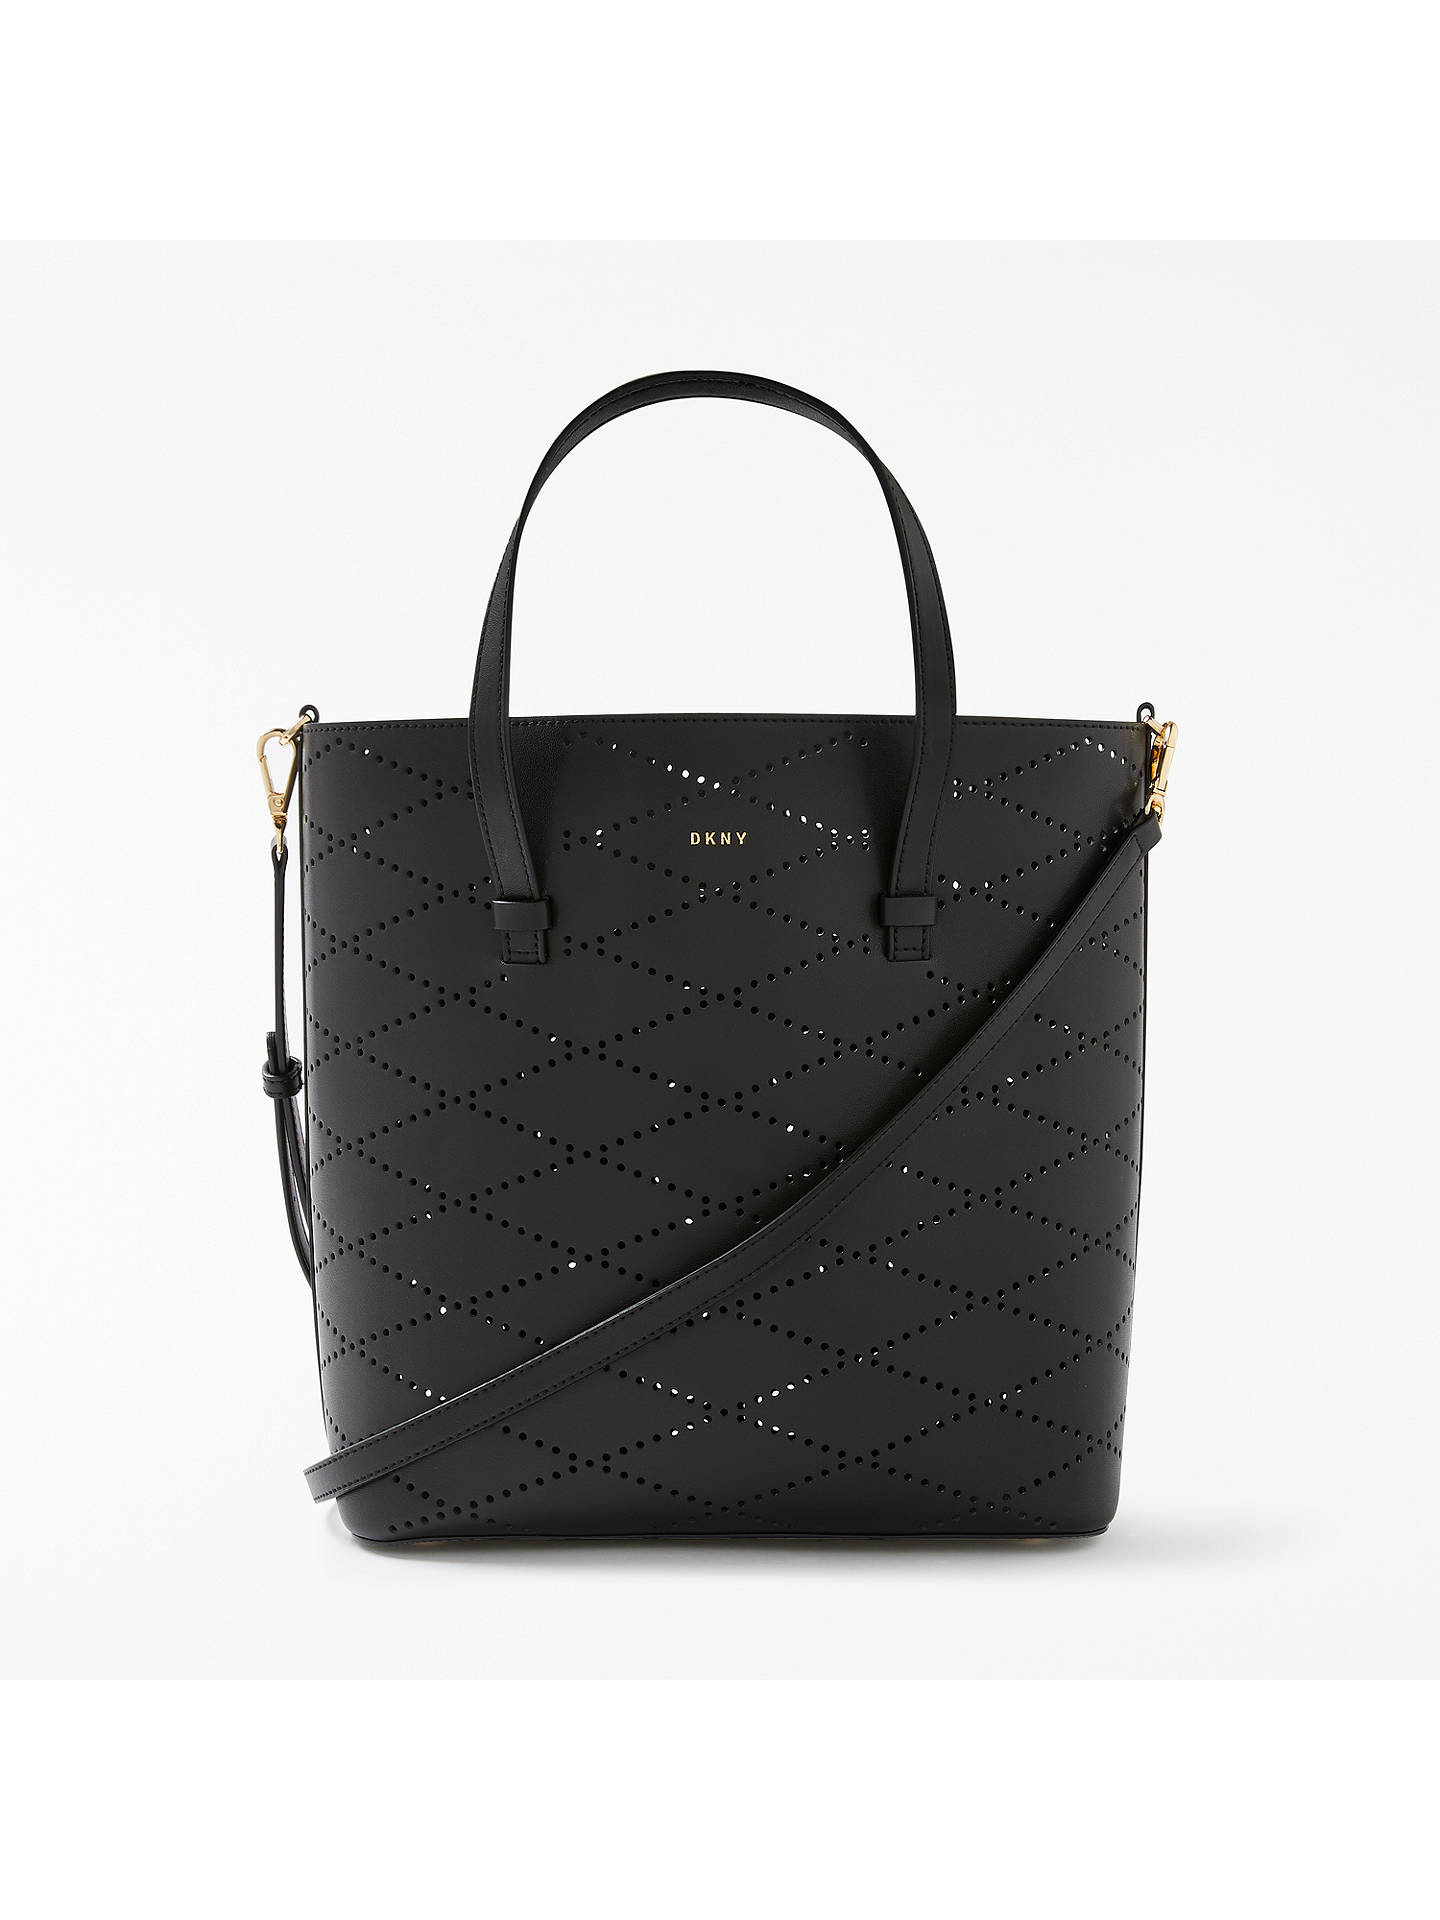 Dkny Leather Perforated Small Tote Bag Black Online At Johnlewis